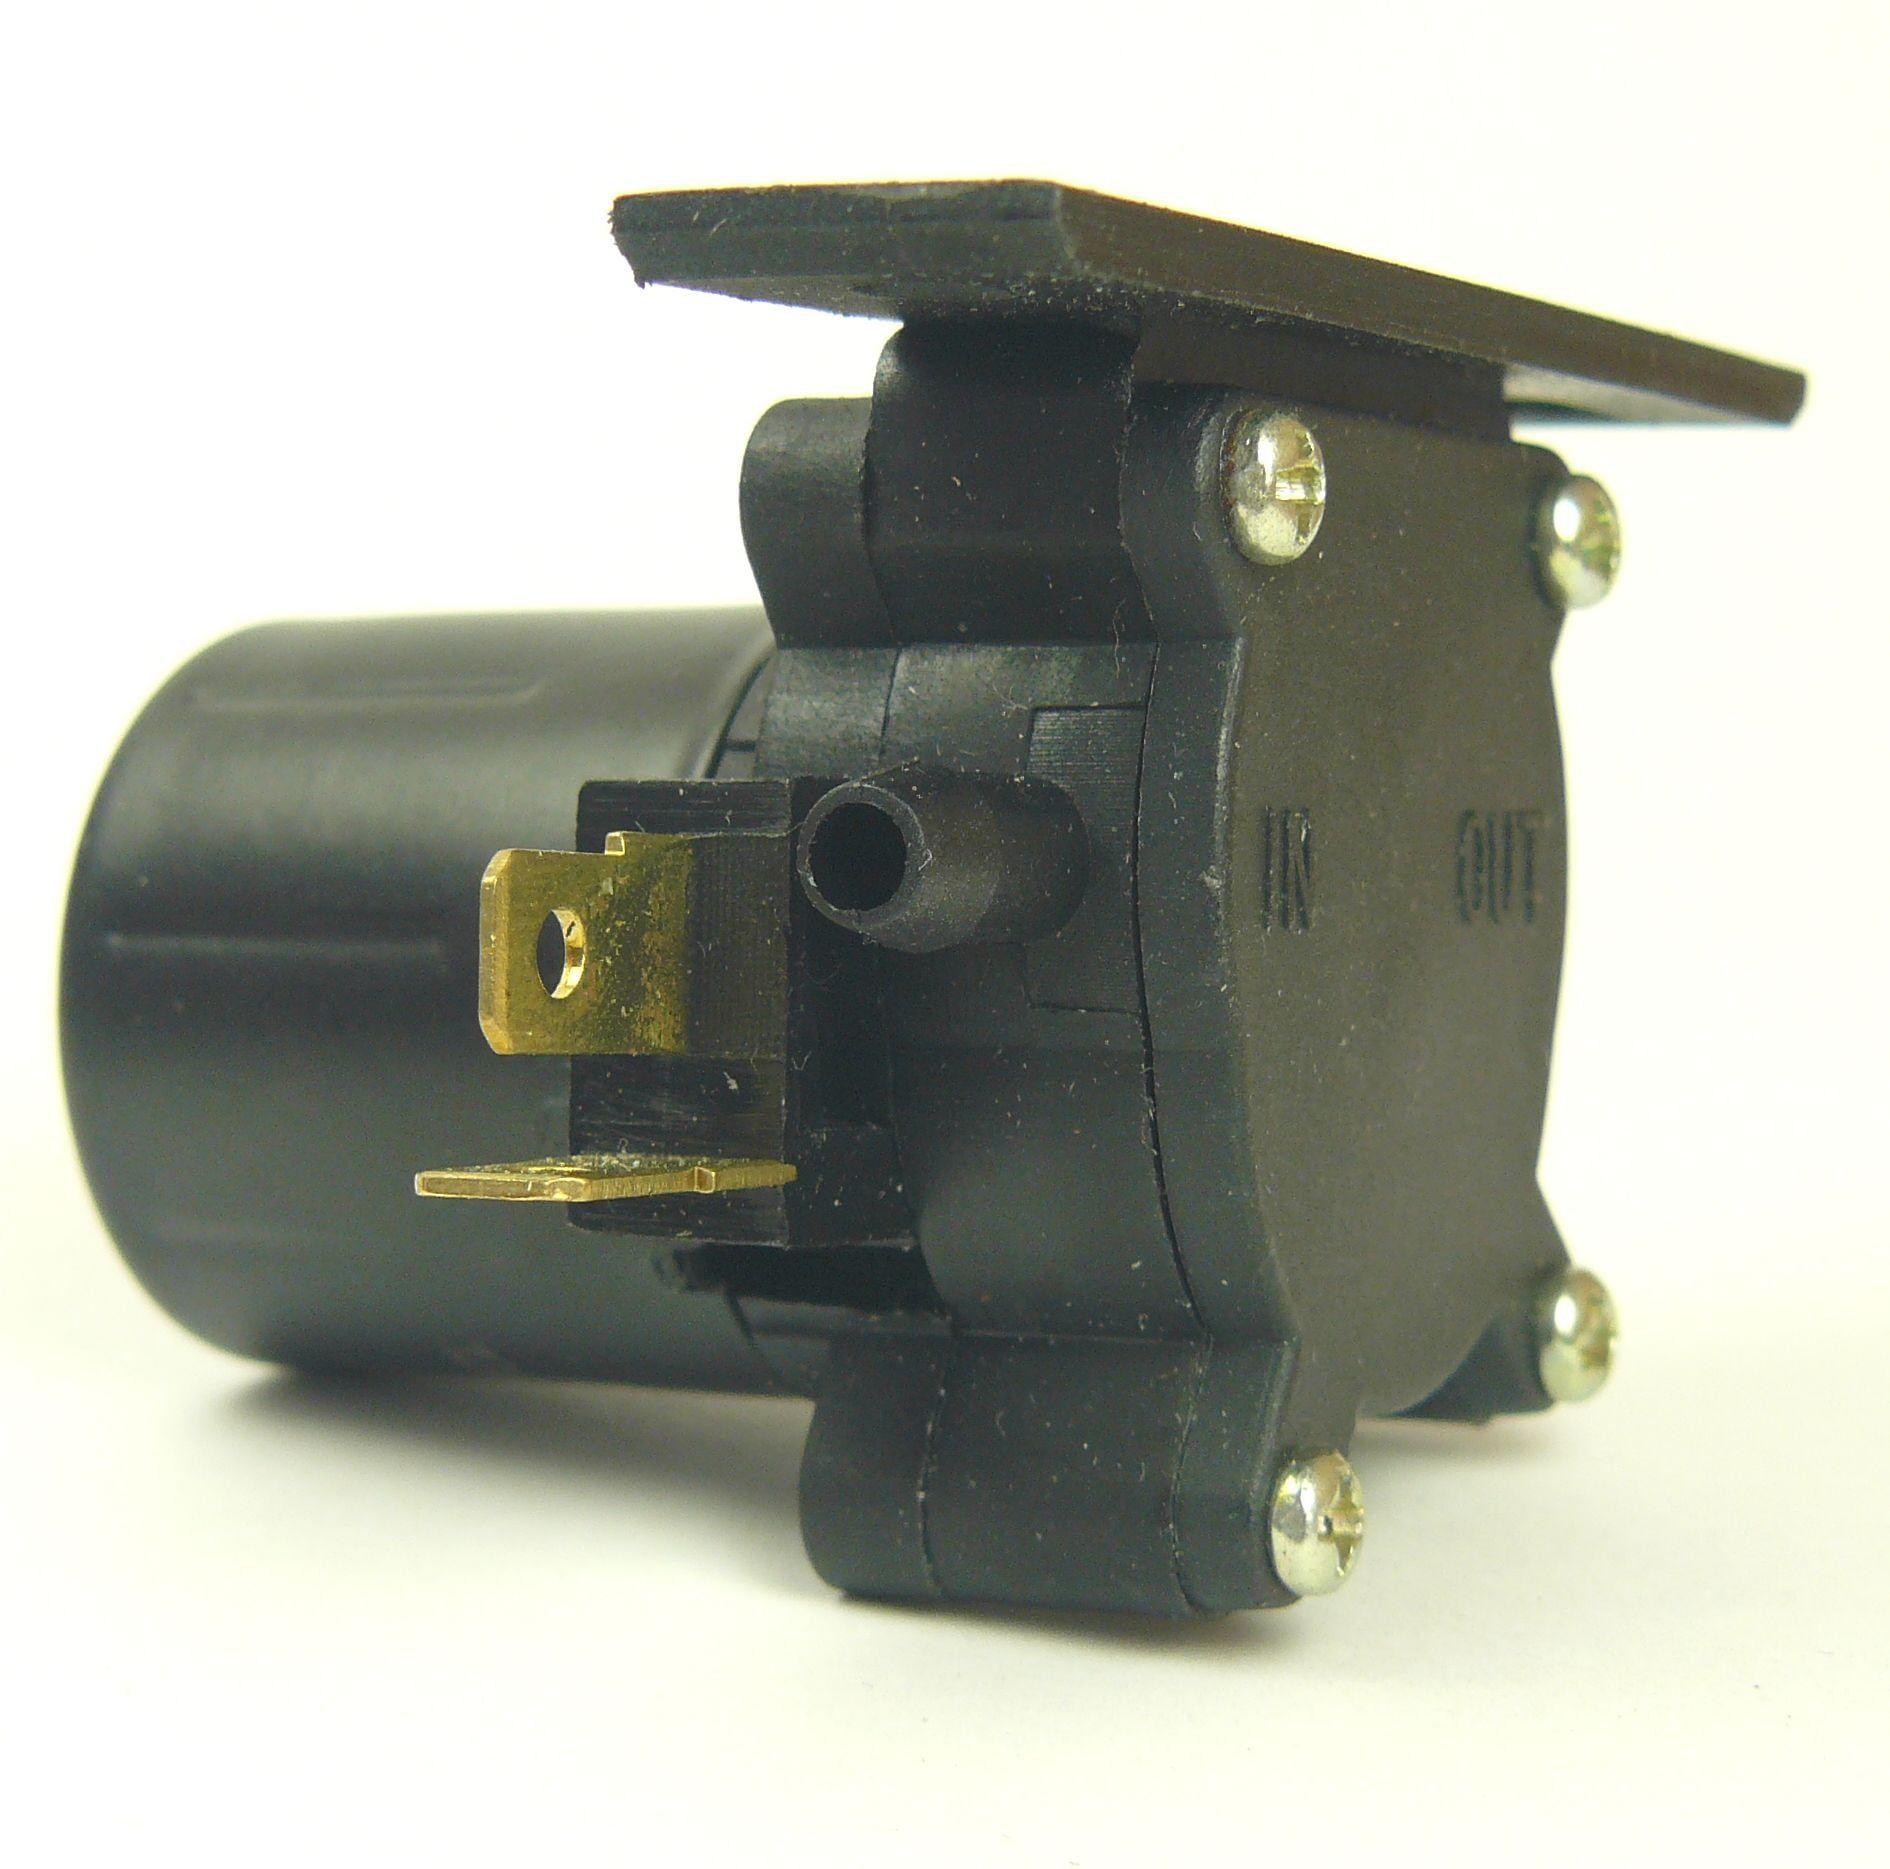 Caldercraft Water Pump 6 to 12 Volts Operation for use in Model Boats